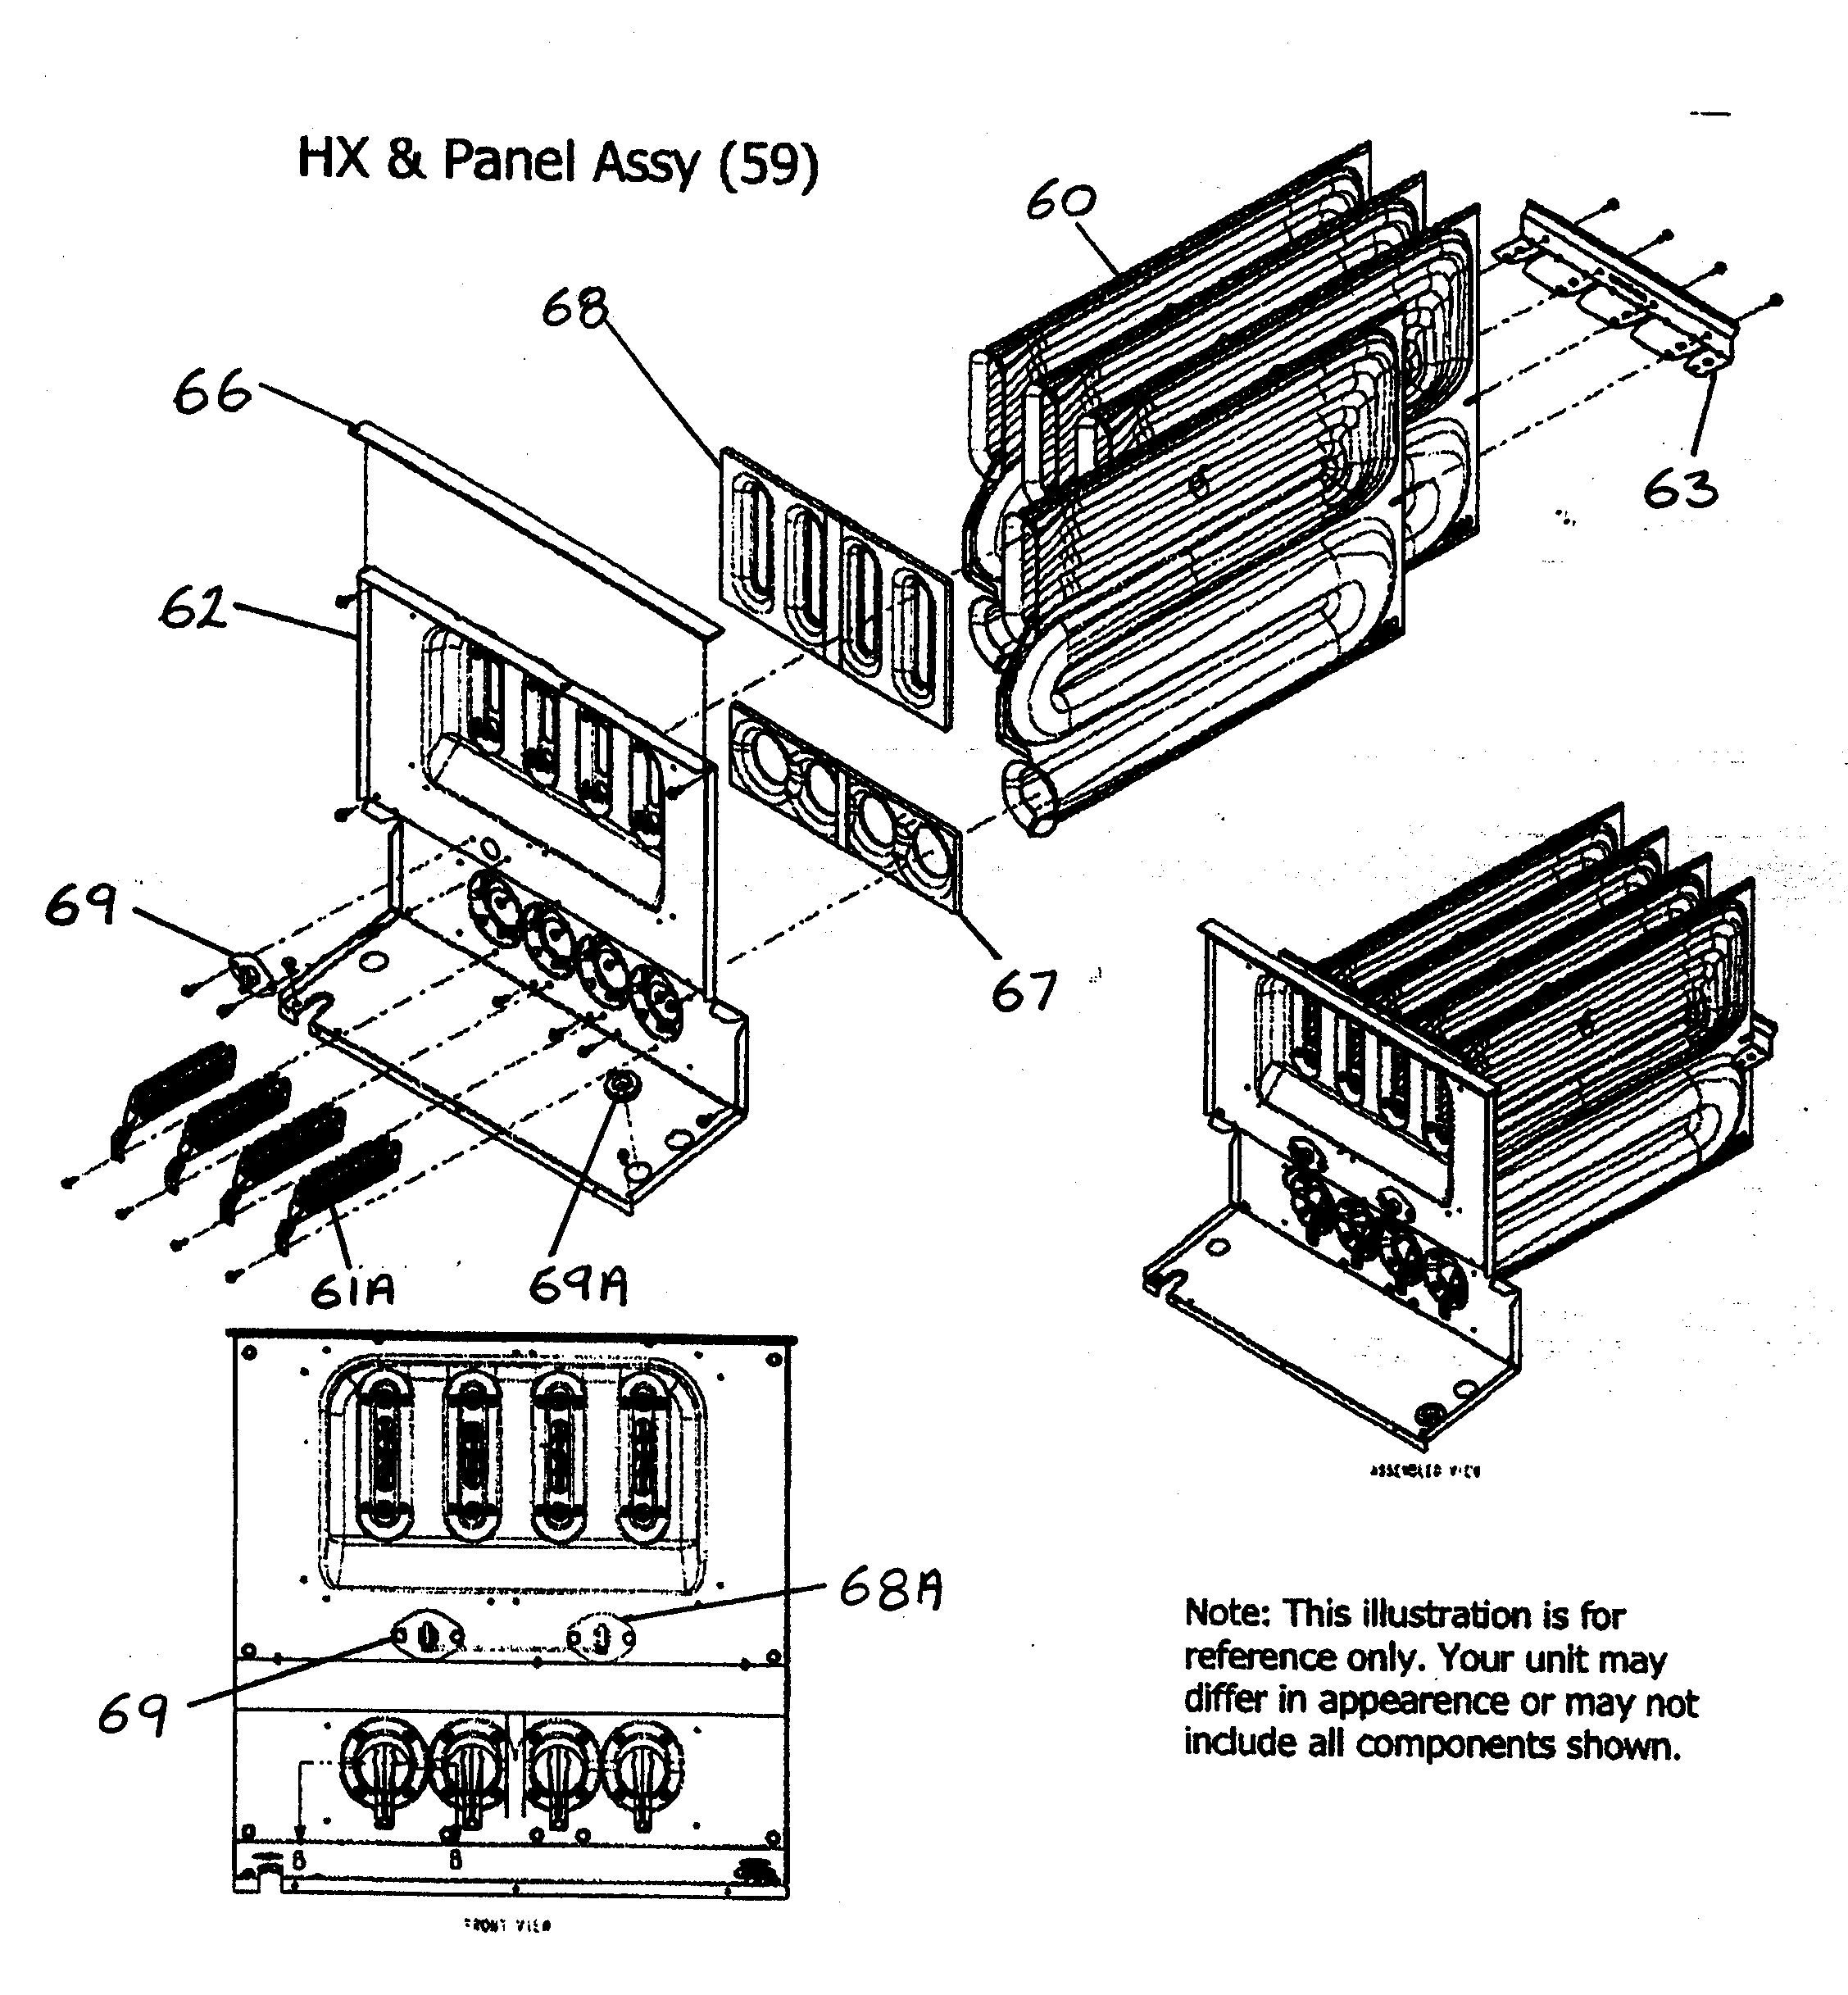 HX/PANEL ASSY Diagram & Parts List for Model